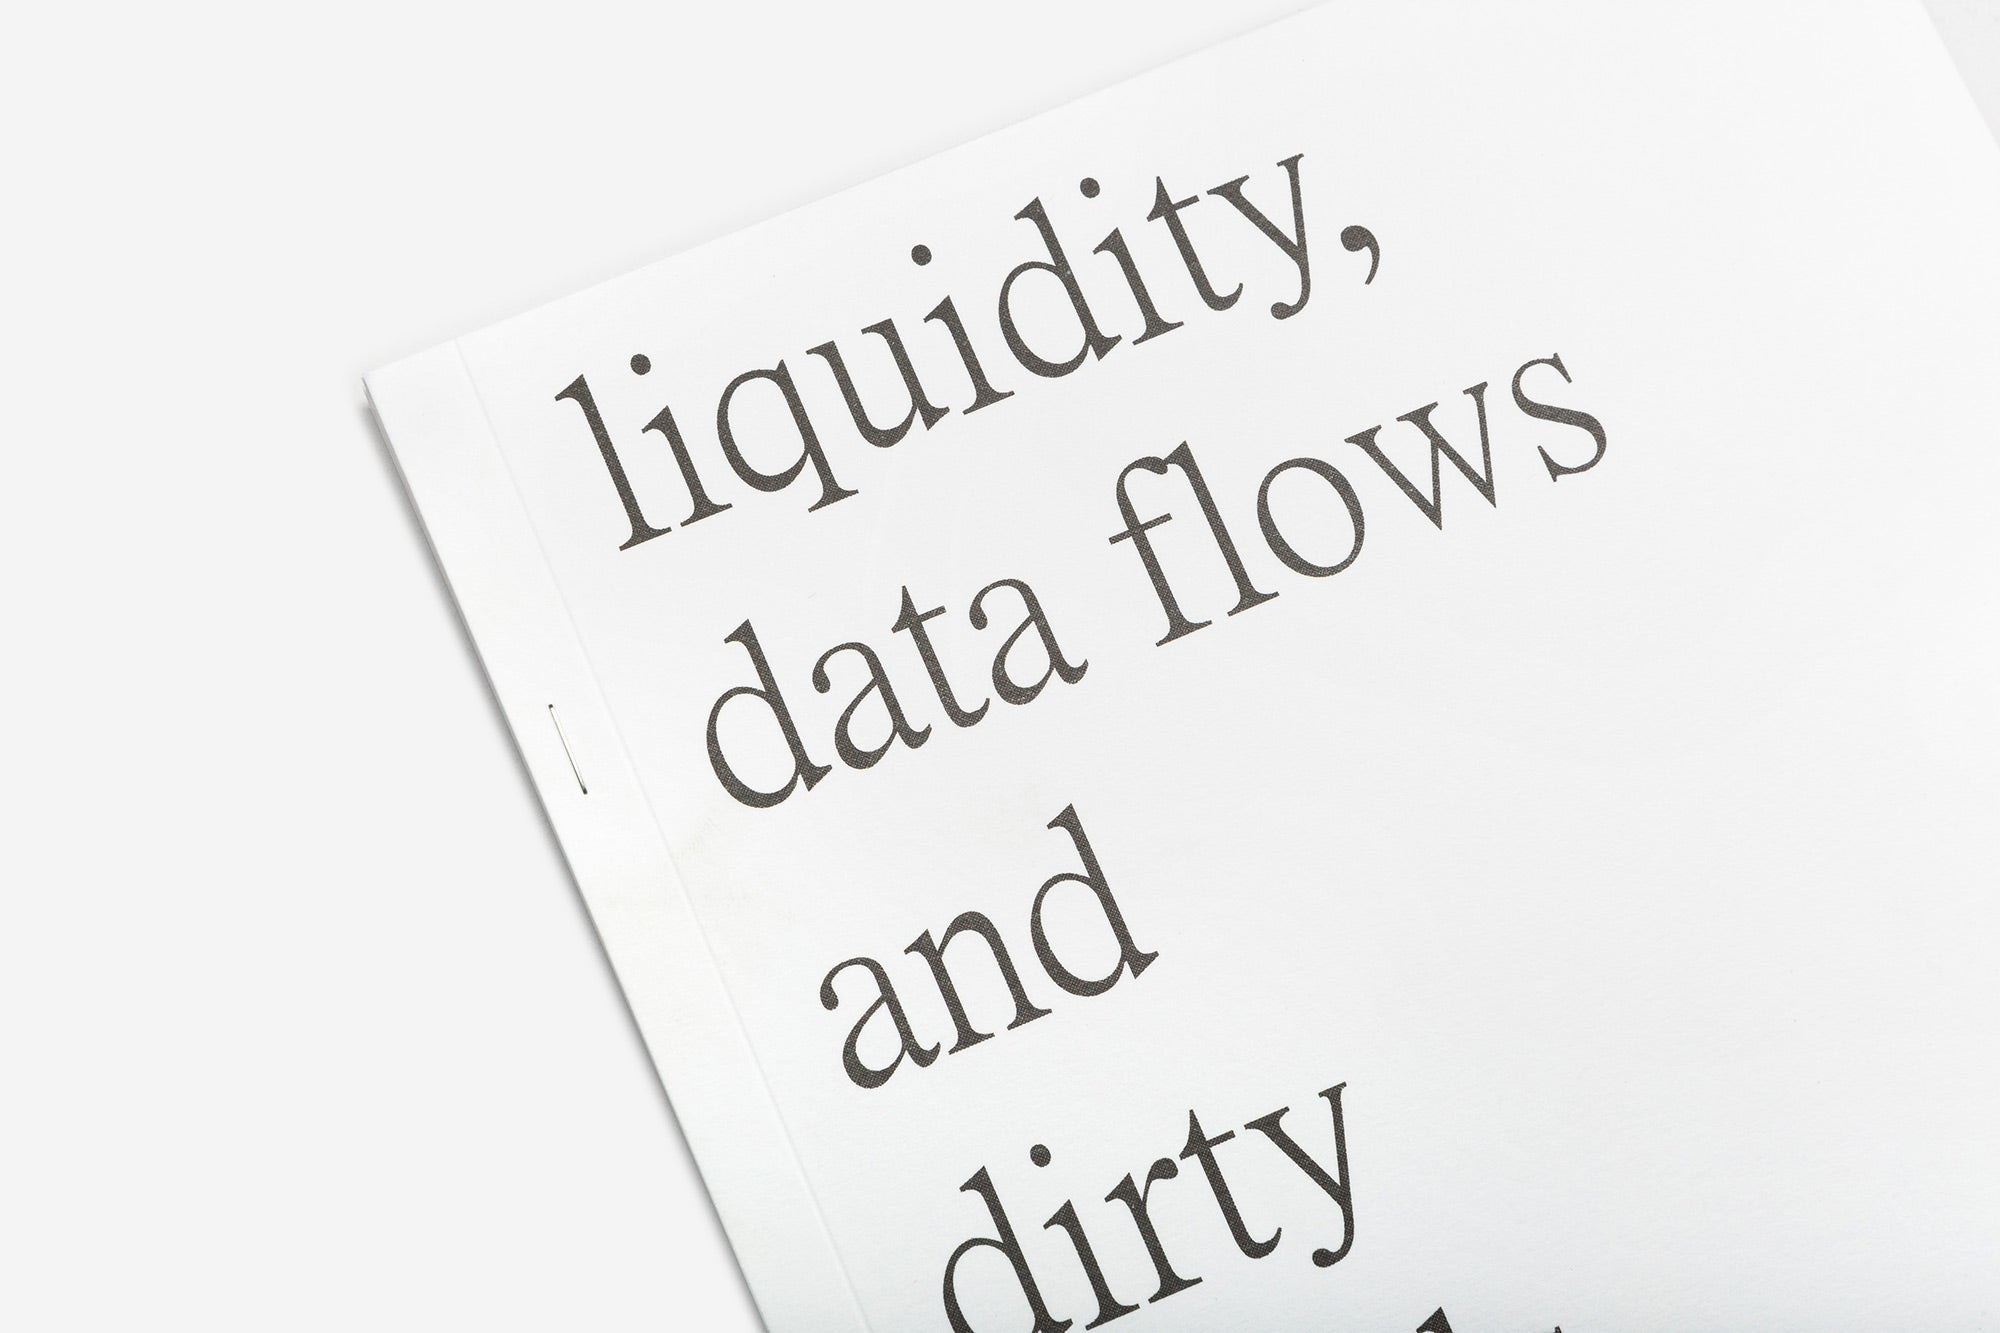 liquidity, data flows and dirty hands